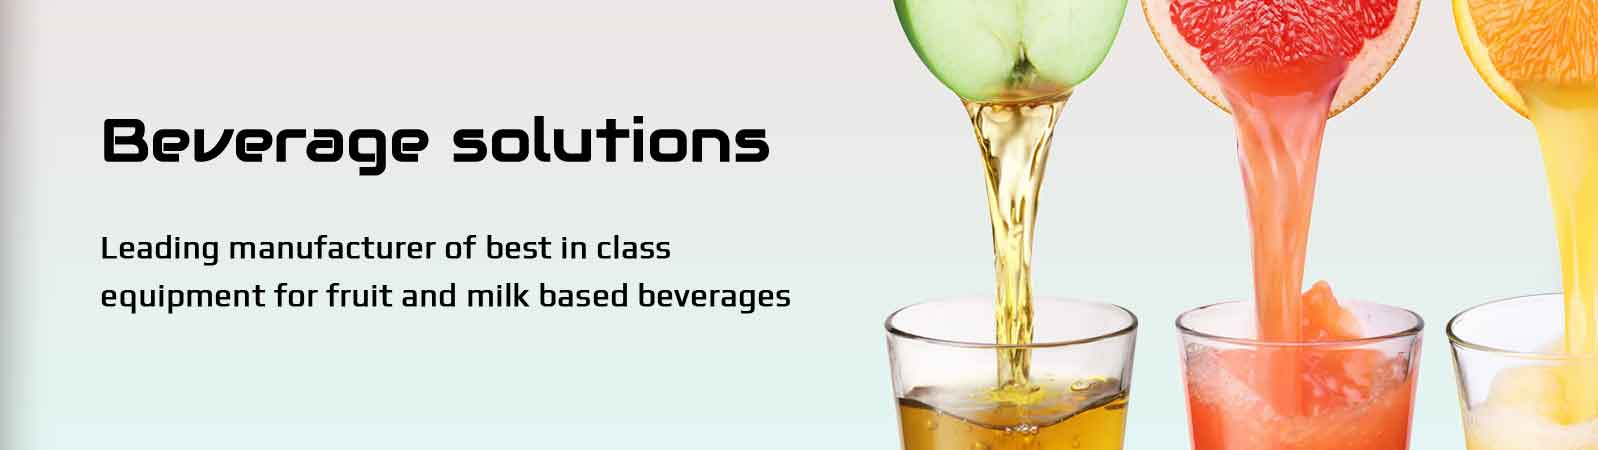 Beverage Solutions